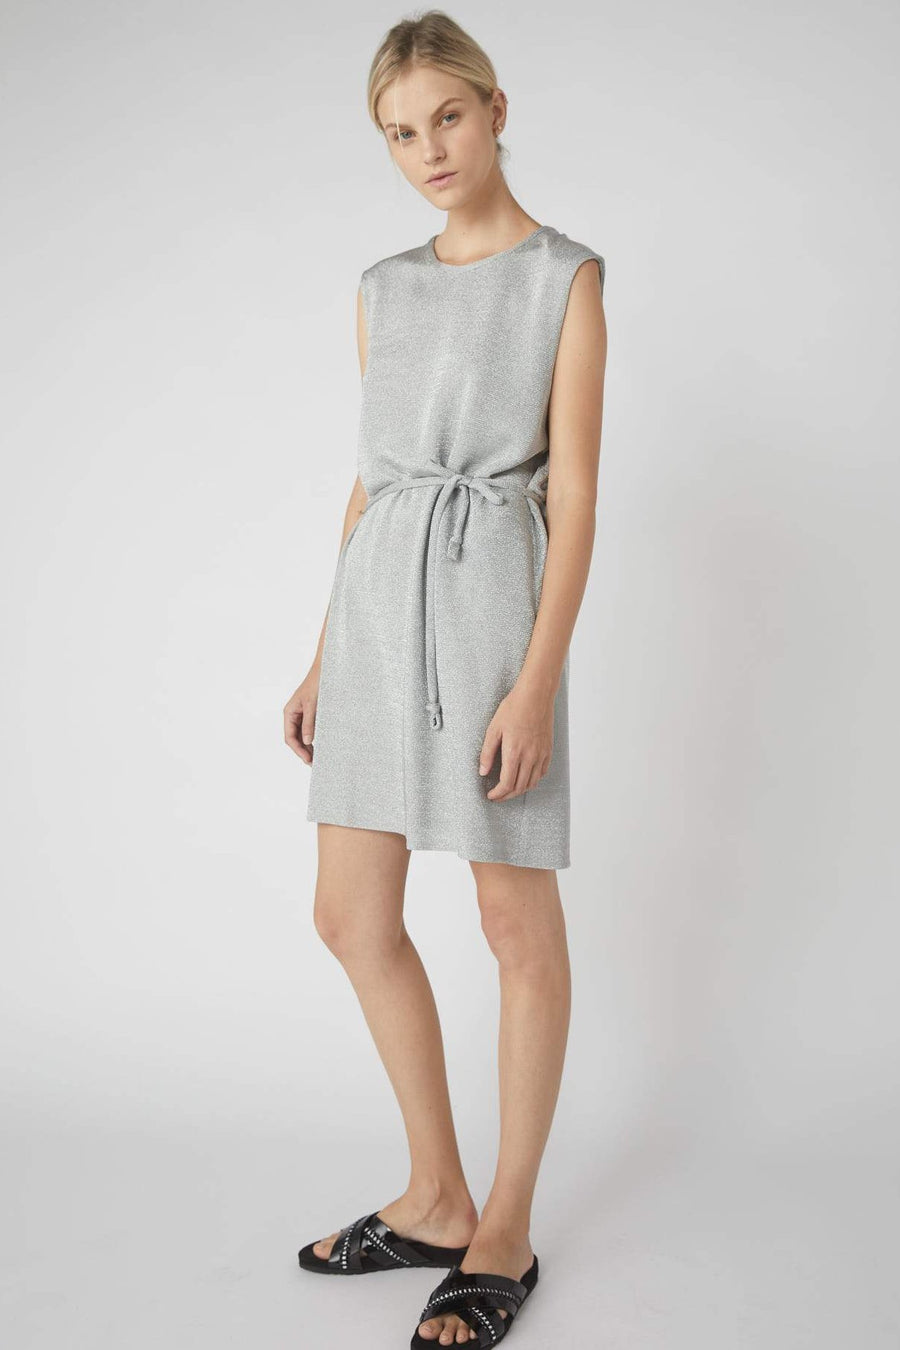 Collapse Back Metallic Mini Dress / Silver